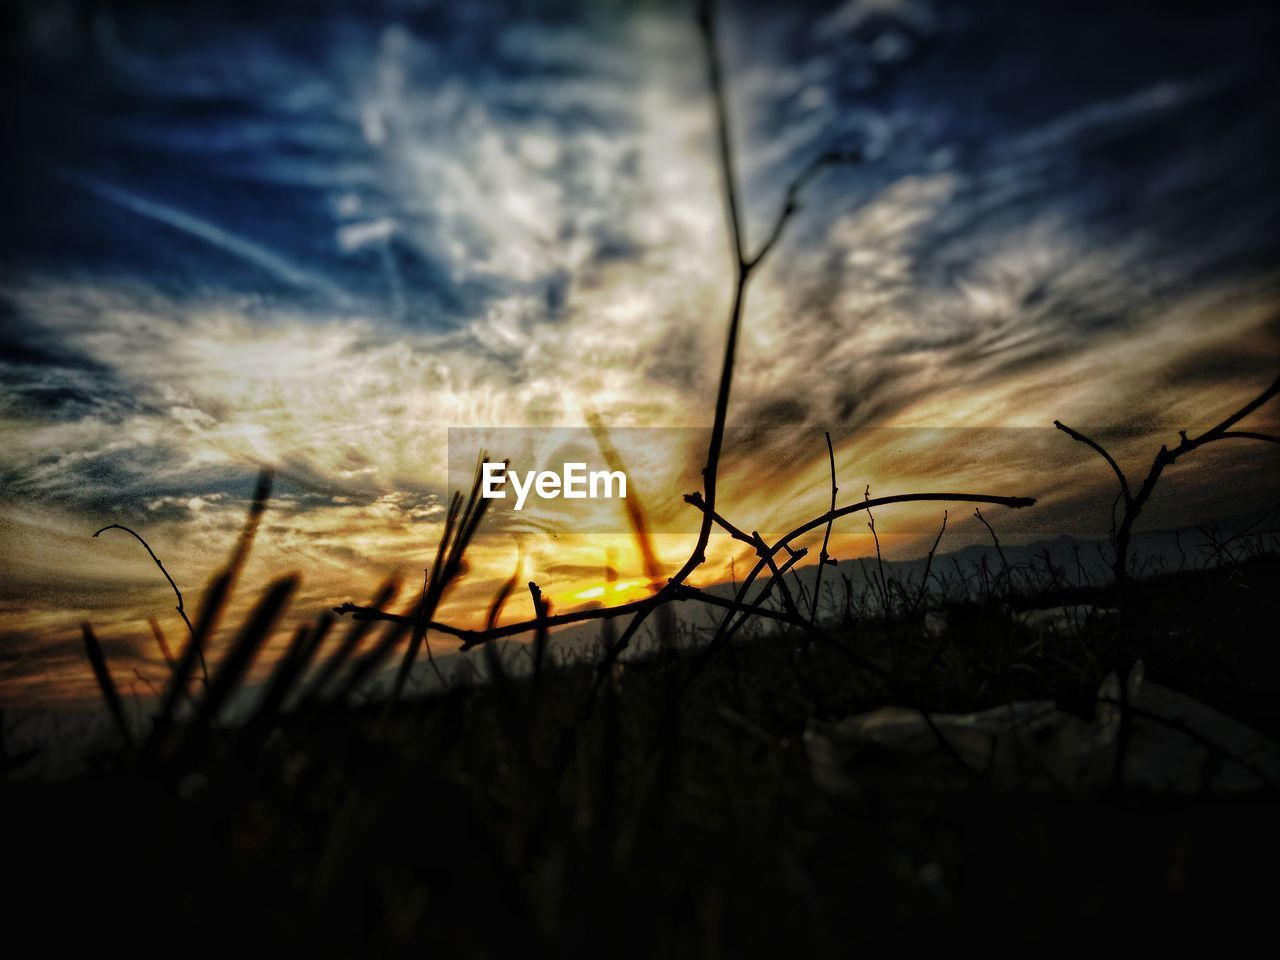 sunset, nature, sky, beauty in nature, scenics, sun, silhouette, outdoors, no people, field, tranquil scene, growth, plant, tranquility, cloud - sky, sunlight, grass, rural scene, close-up, day